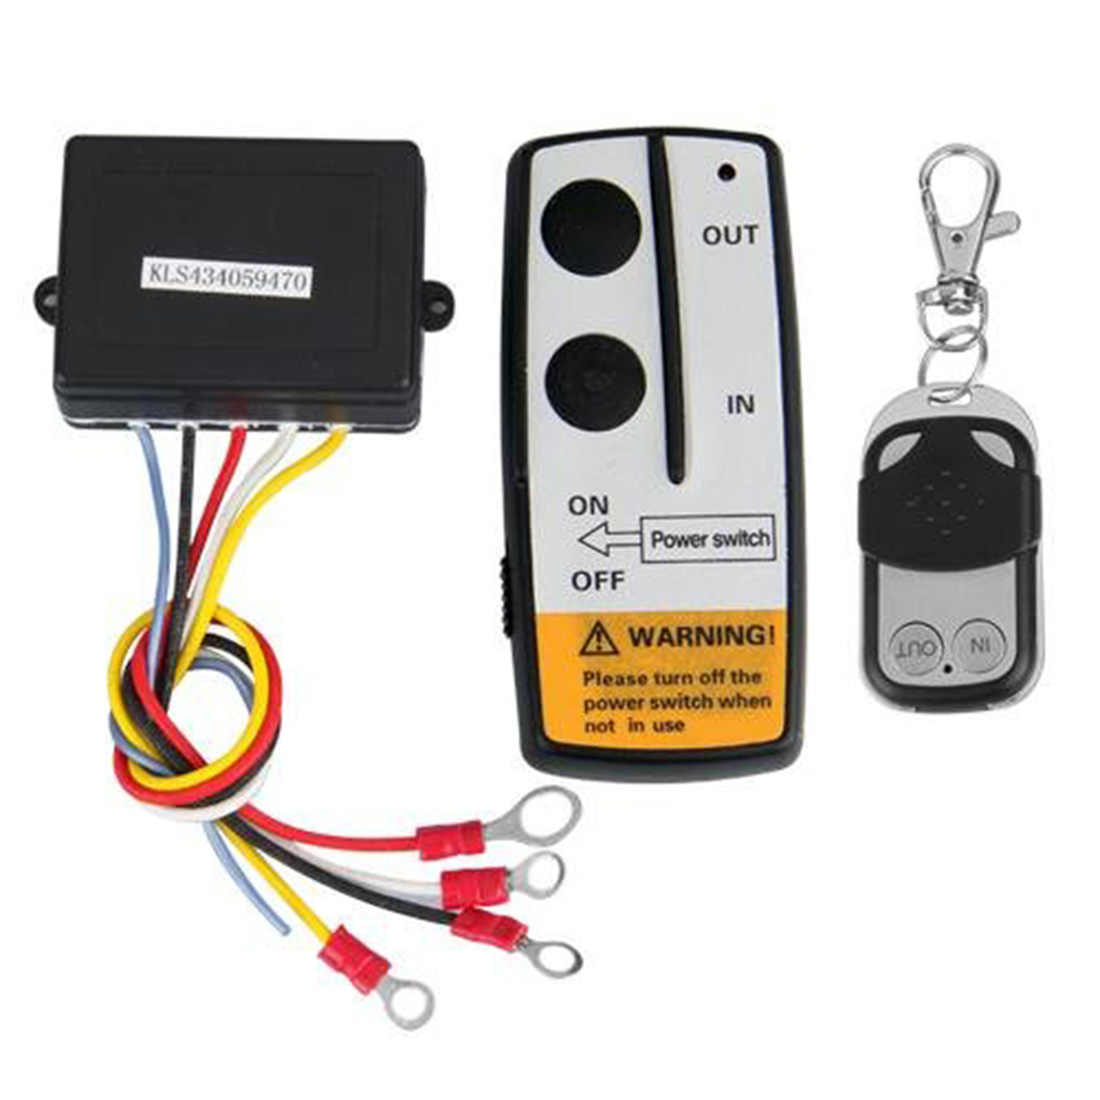 Wireless Winch Remote Control Kit,12V 50ft Universal Wireless Winch Remote Control Controller Kit Winch Remote Control for Car Truck